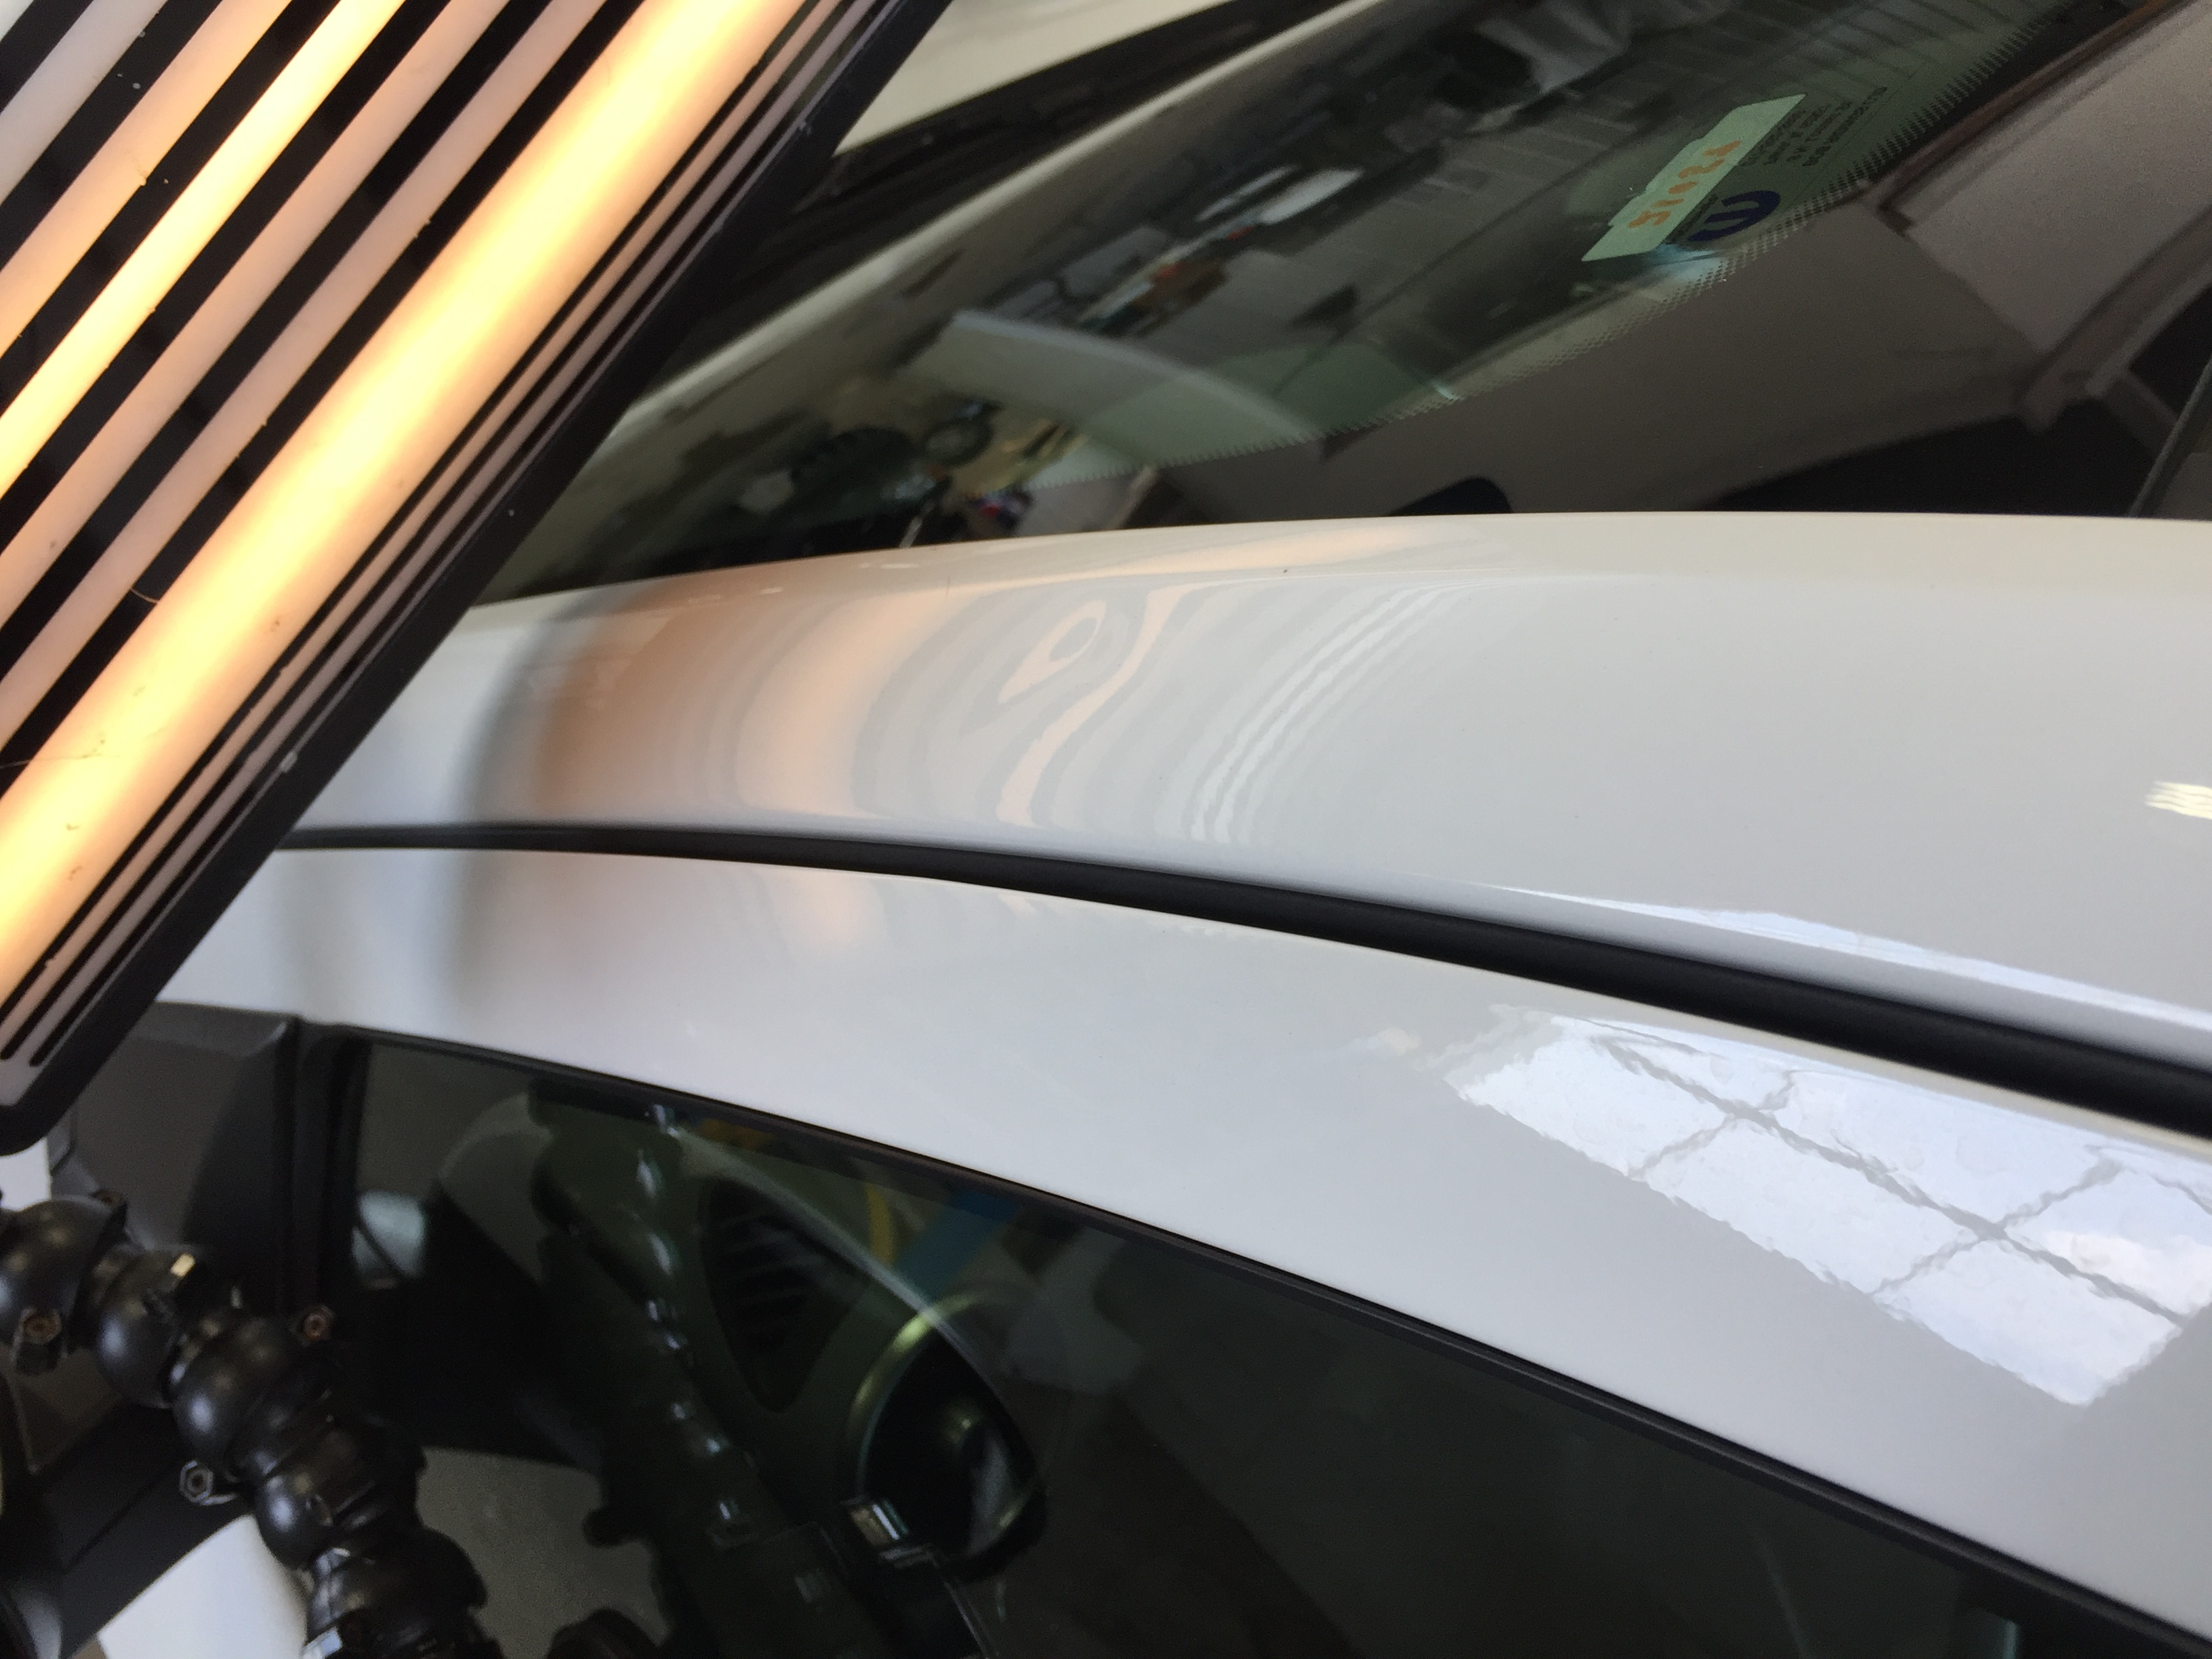 2015 Chevy Sonic, Dent Removal on PIllar, Images, Hail Damage, Paintless Dent Removal, Springfield, IL, http://217dent.com